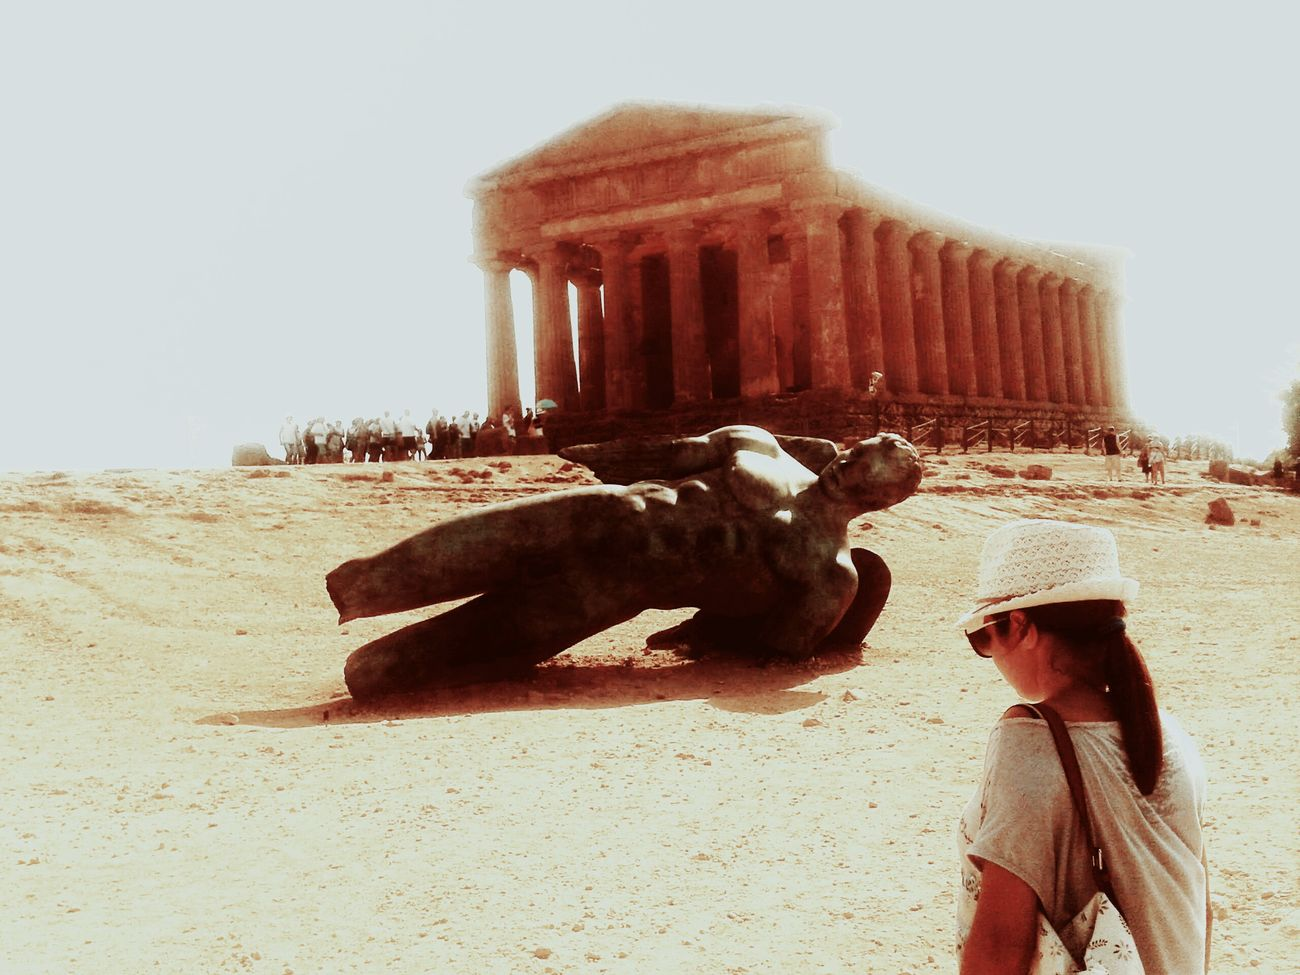 Agrigento Sicily Valle Dei Templi Beauty In Nature Tourist Summer EyeEm Best Edits Architecture Art Miles Away The City Light Let's Go. Together.